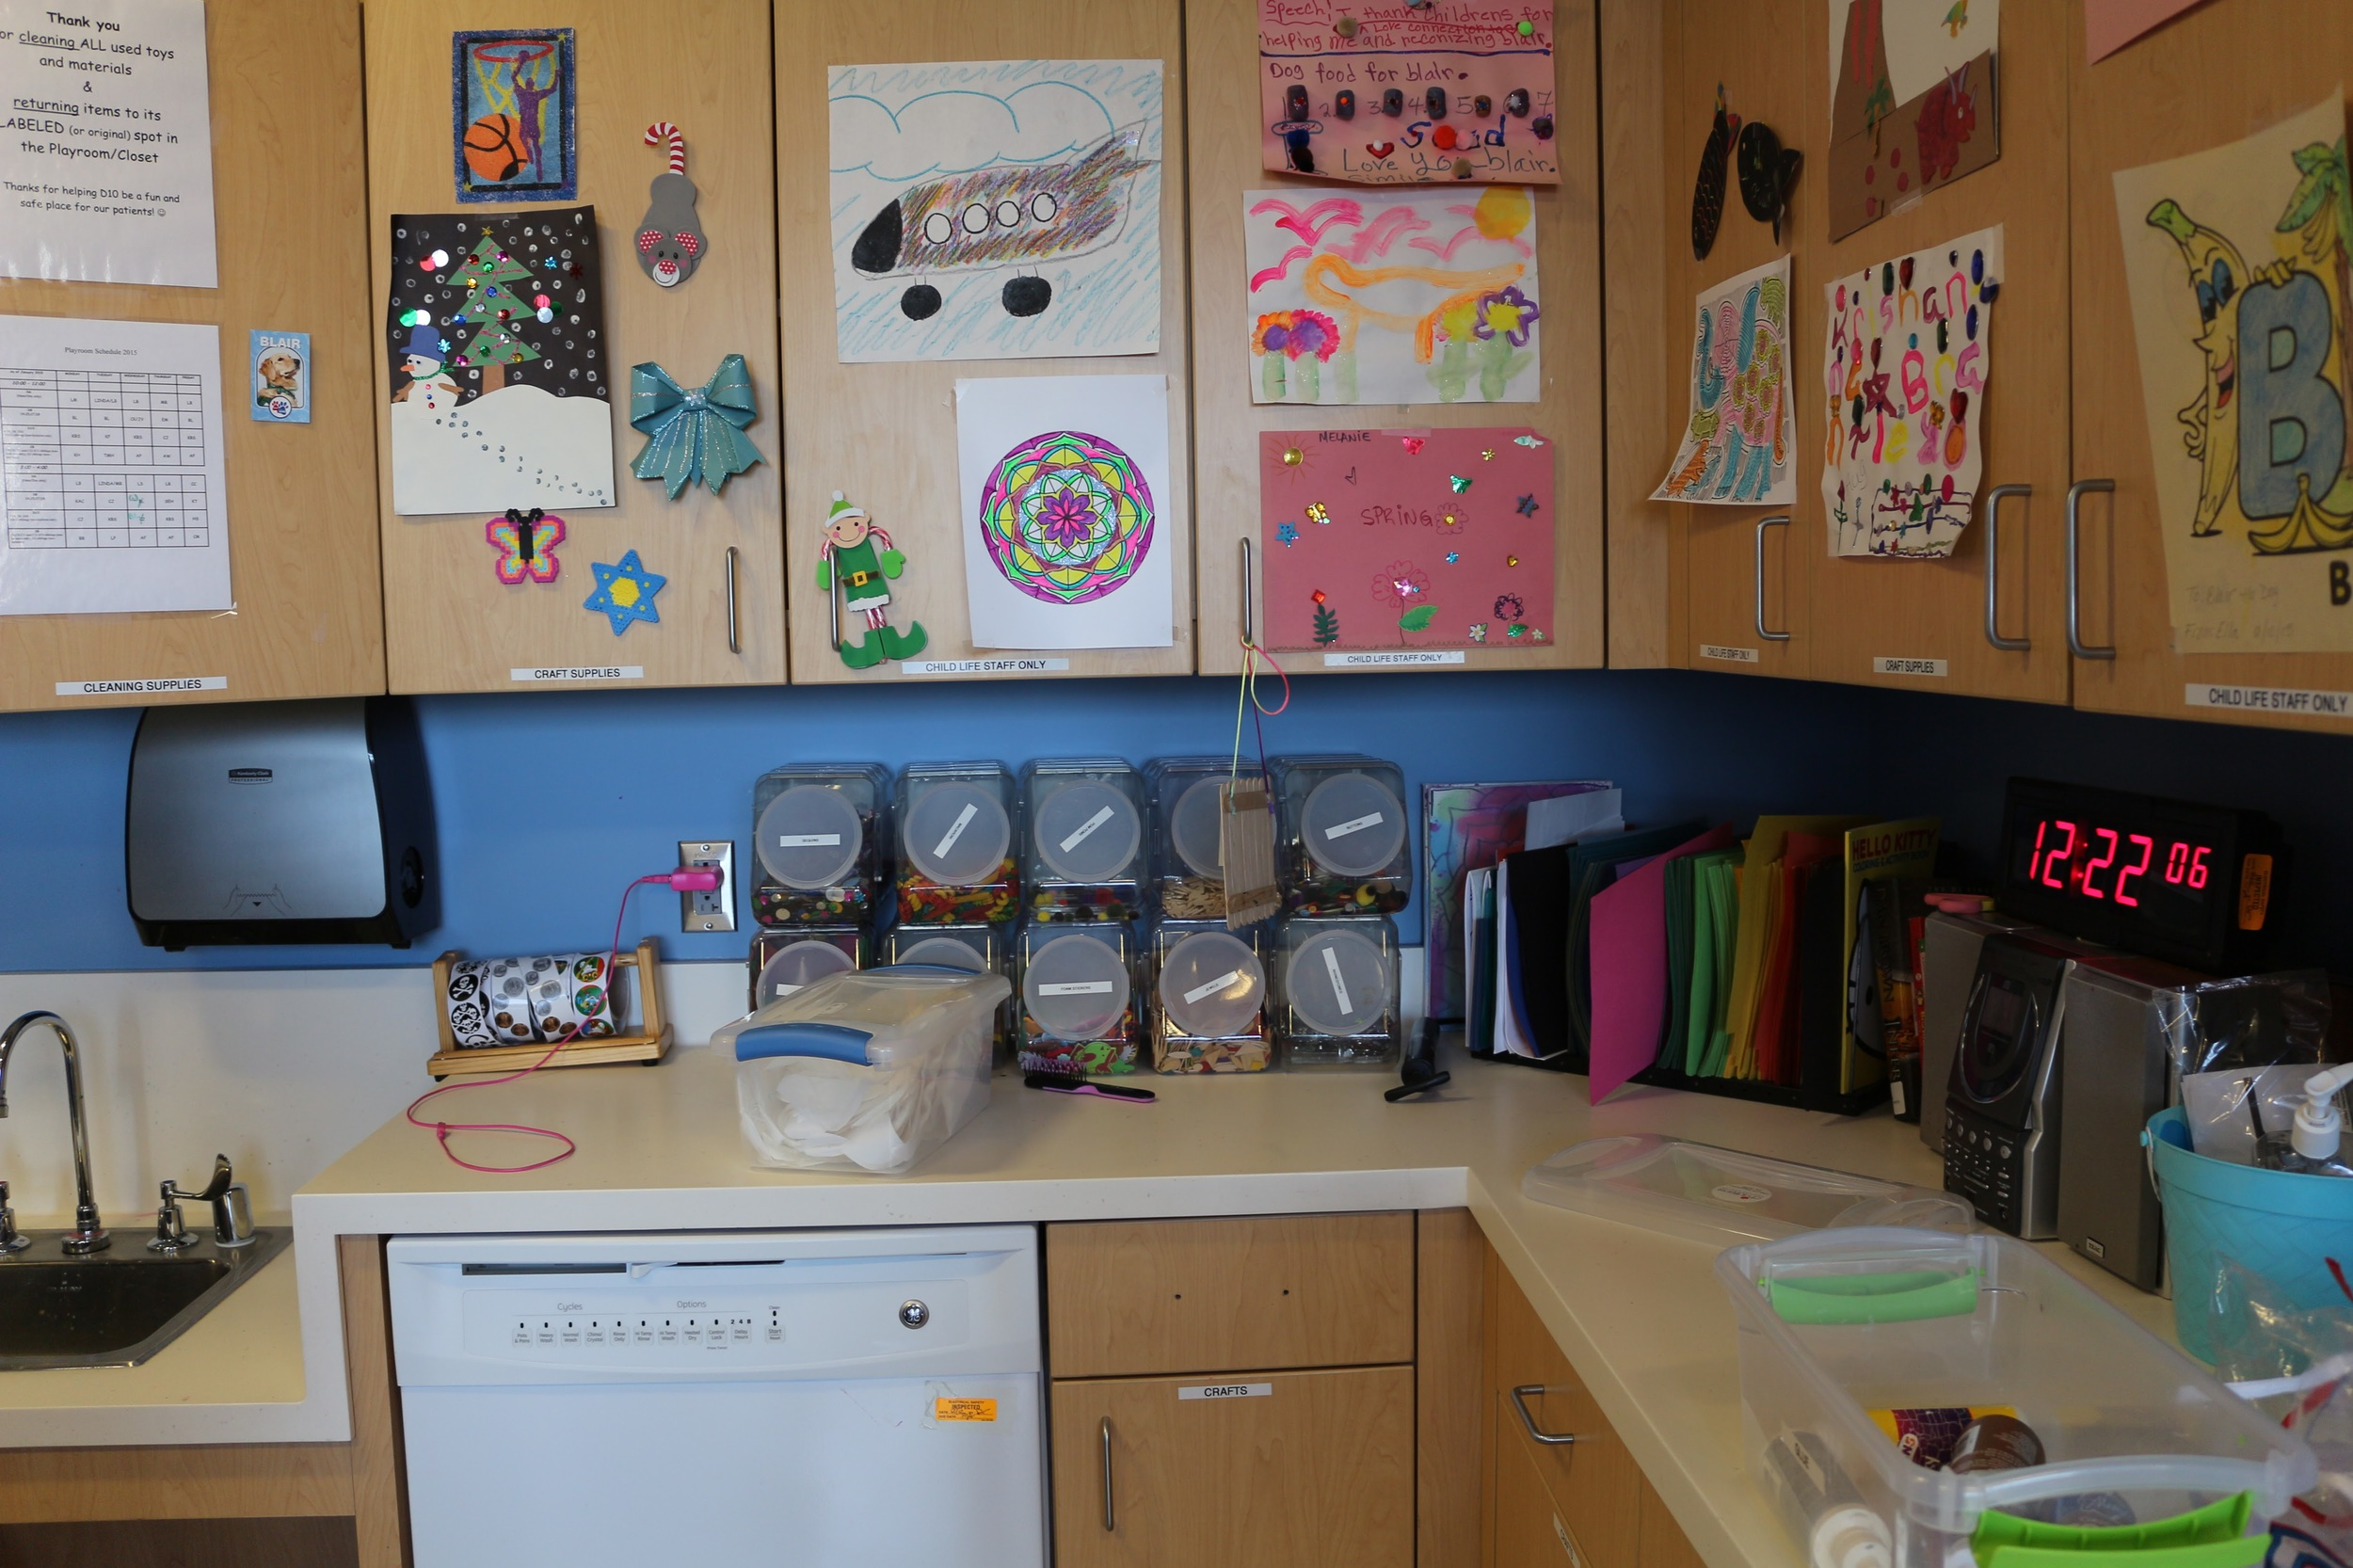 Lots of arts and crafts supplies are available to patients should they choose to pursue those kinds of activities